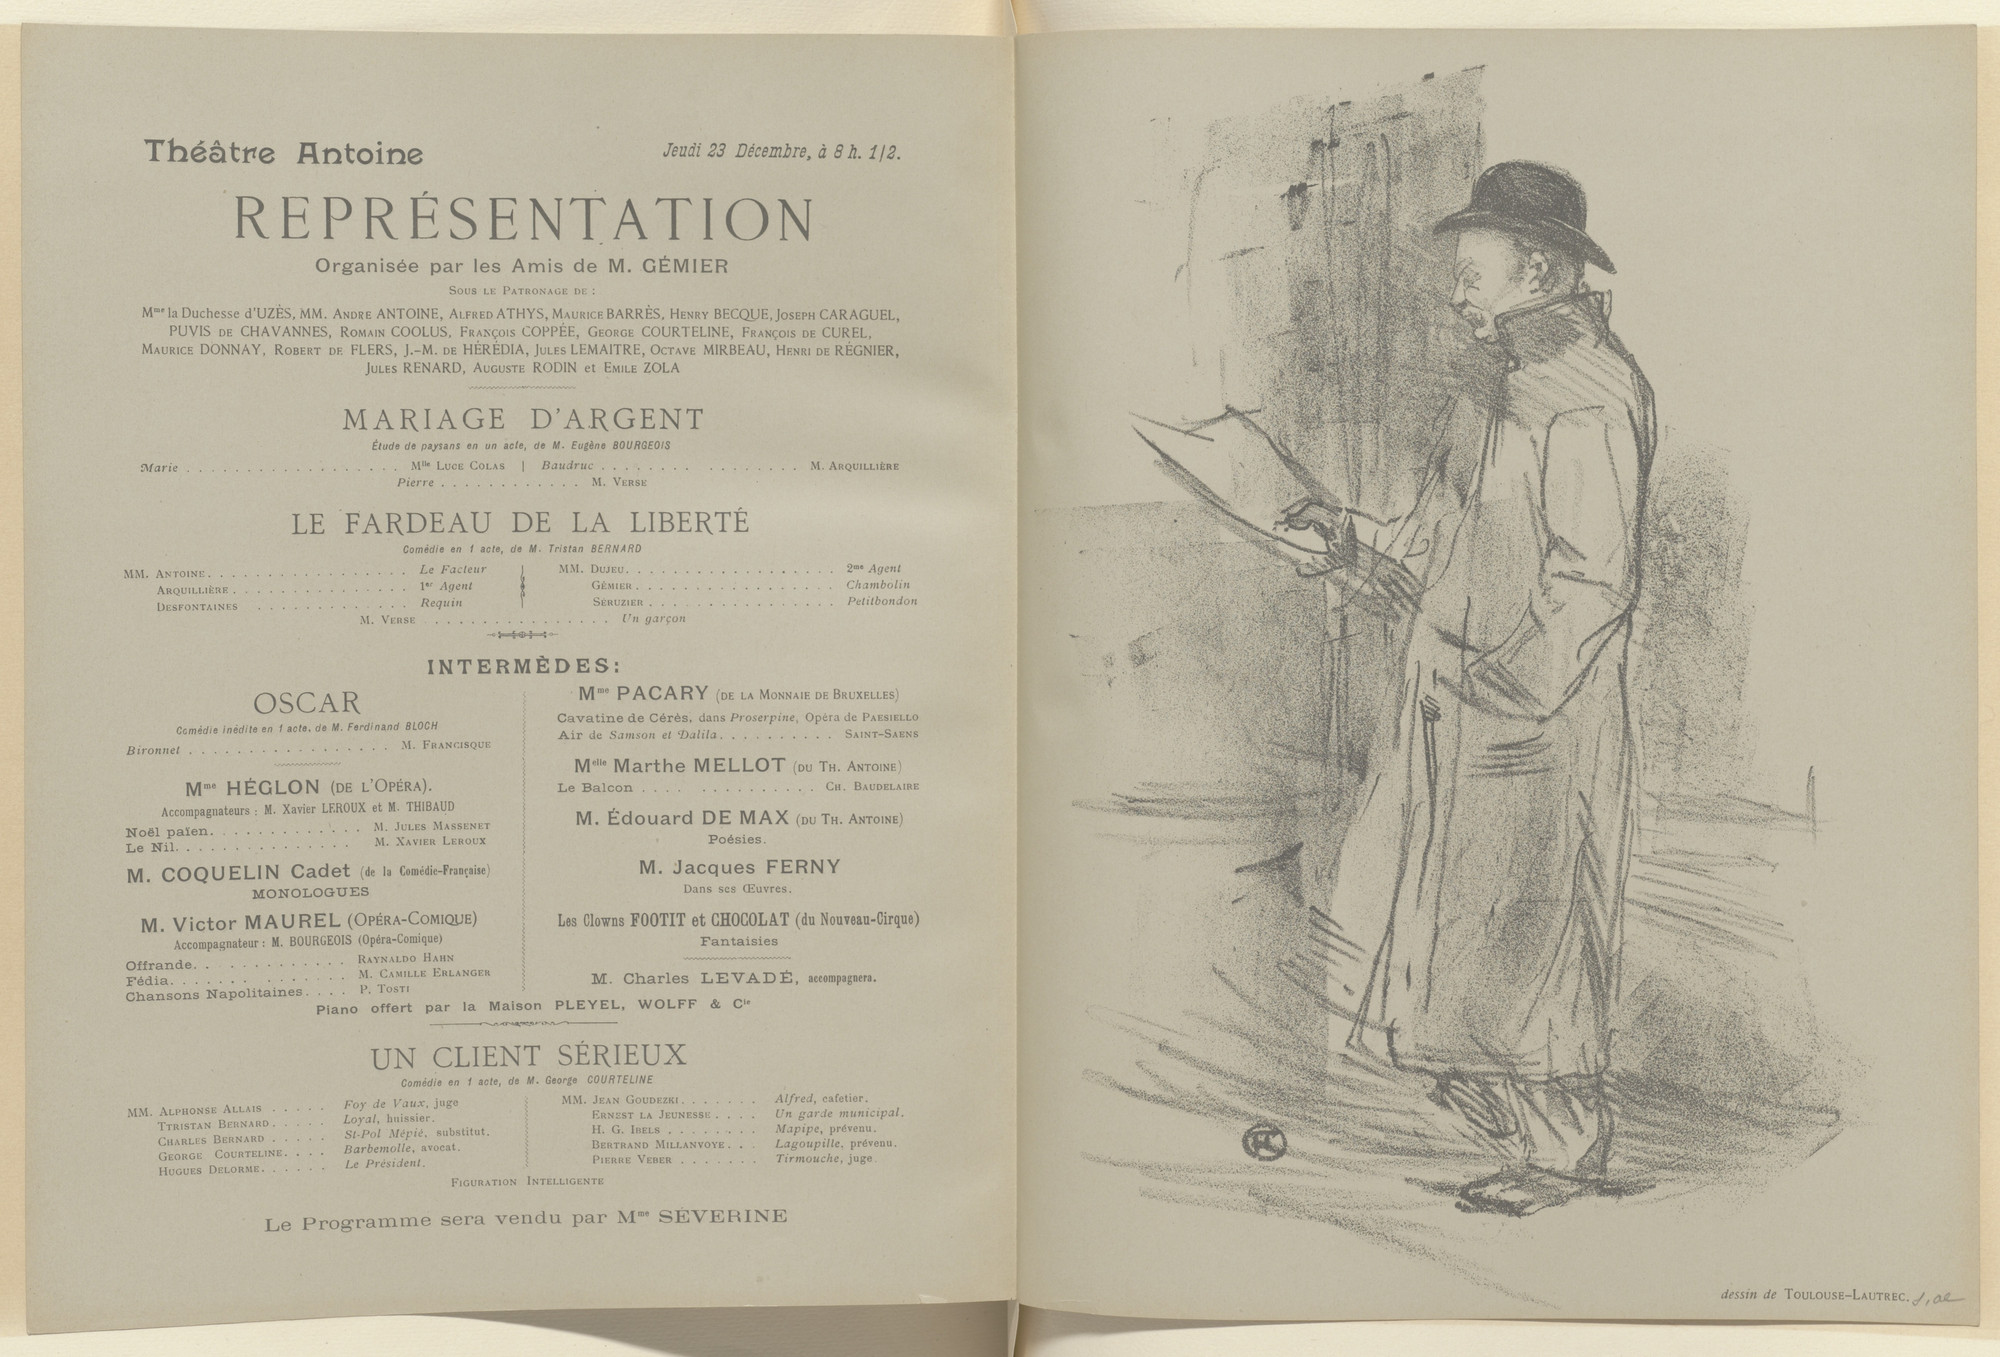 Henri de Toulouse-Lautrec, Louis Anquetin. Firmin Gimiér and Un Satyre program for Mariage d'argent, and Le Fardeau de la liberté and Un Client sérieux de G. Coureline from The Beraldi Album of Theatre Programs. 1897